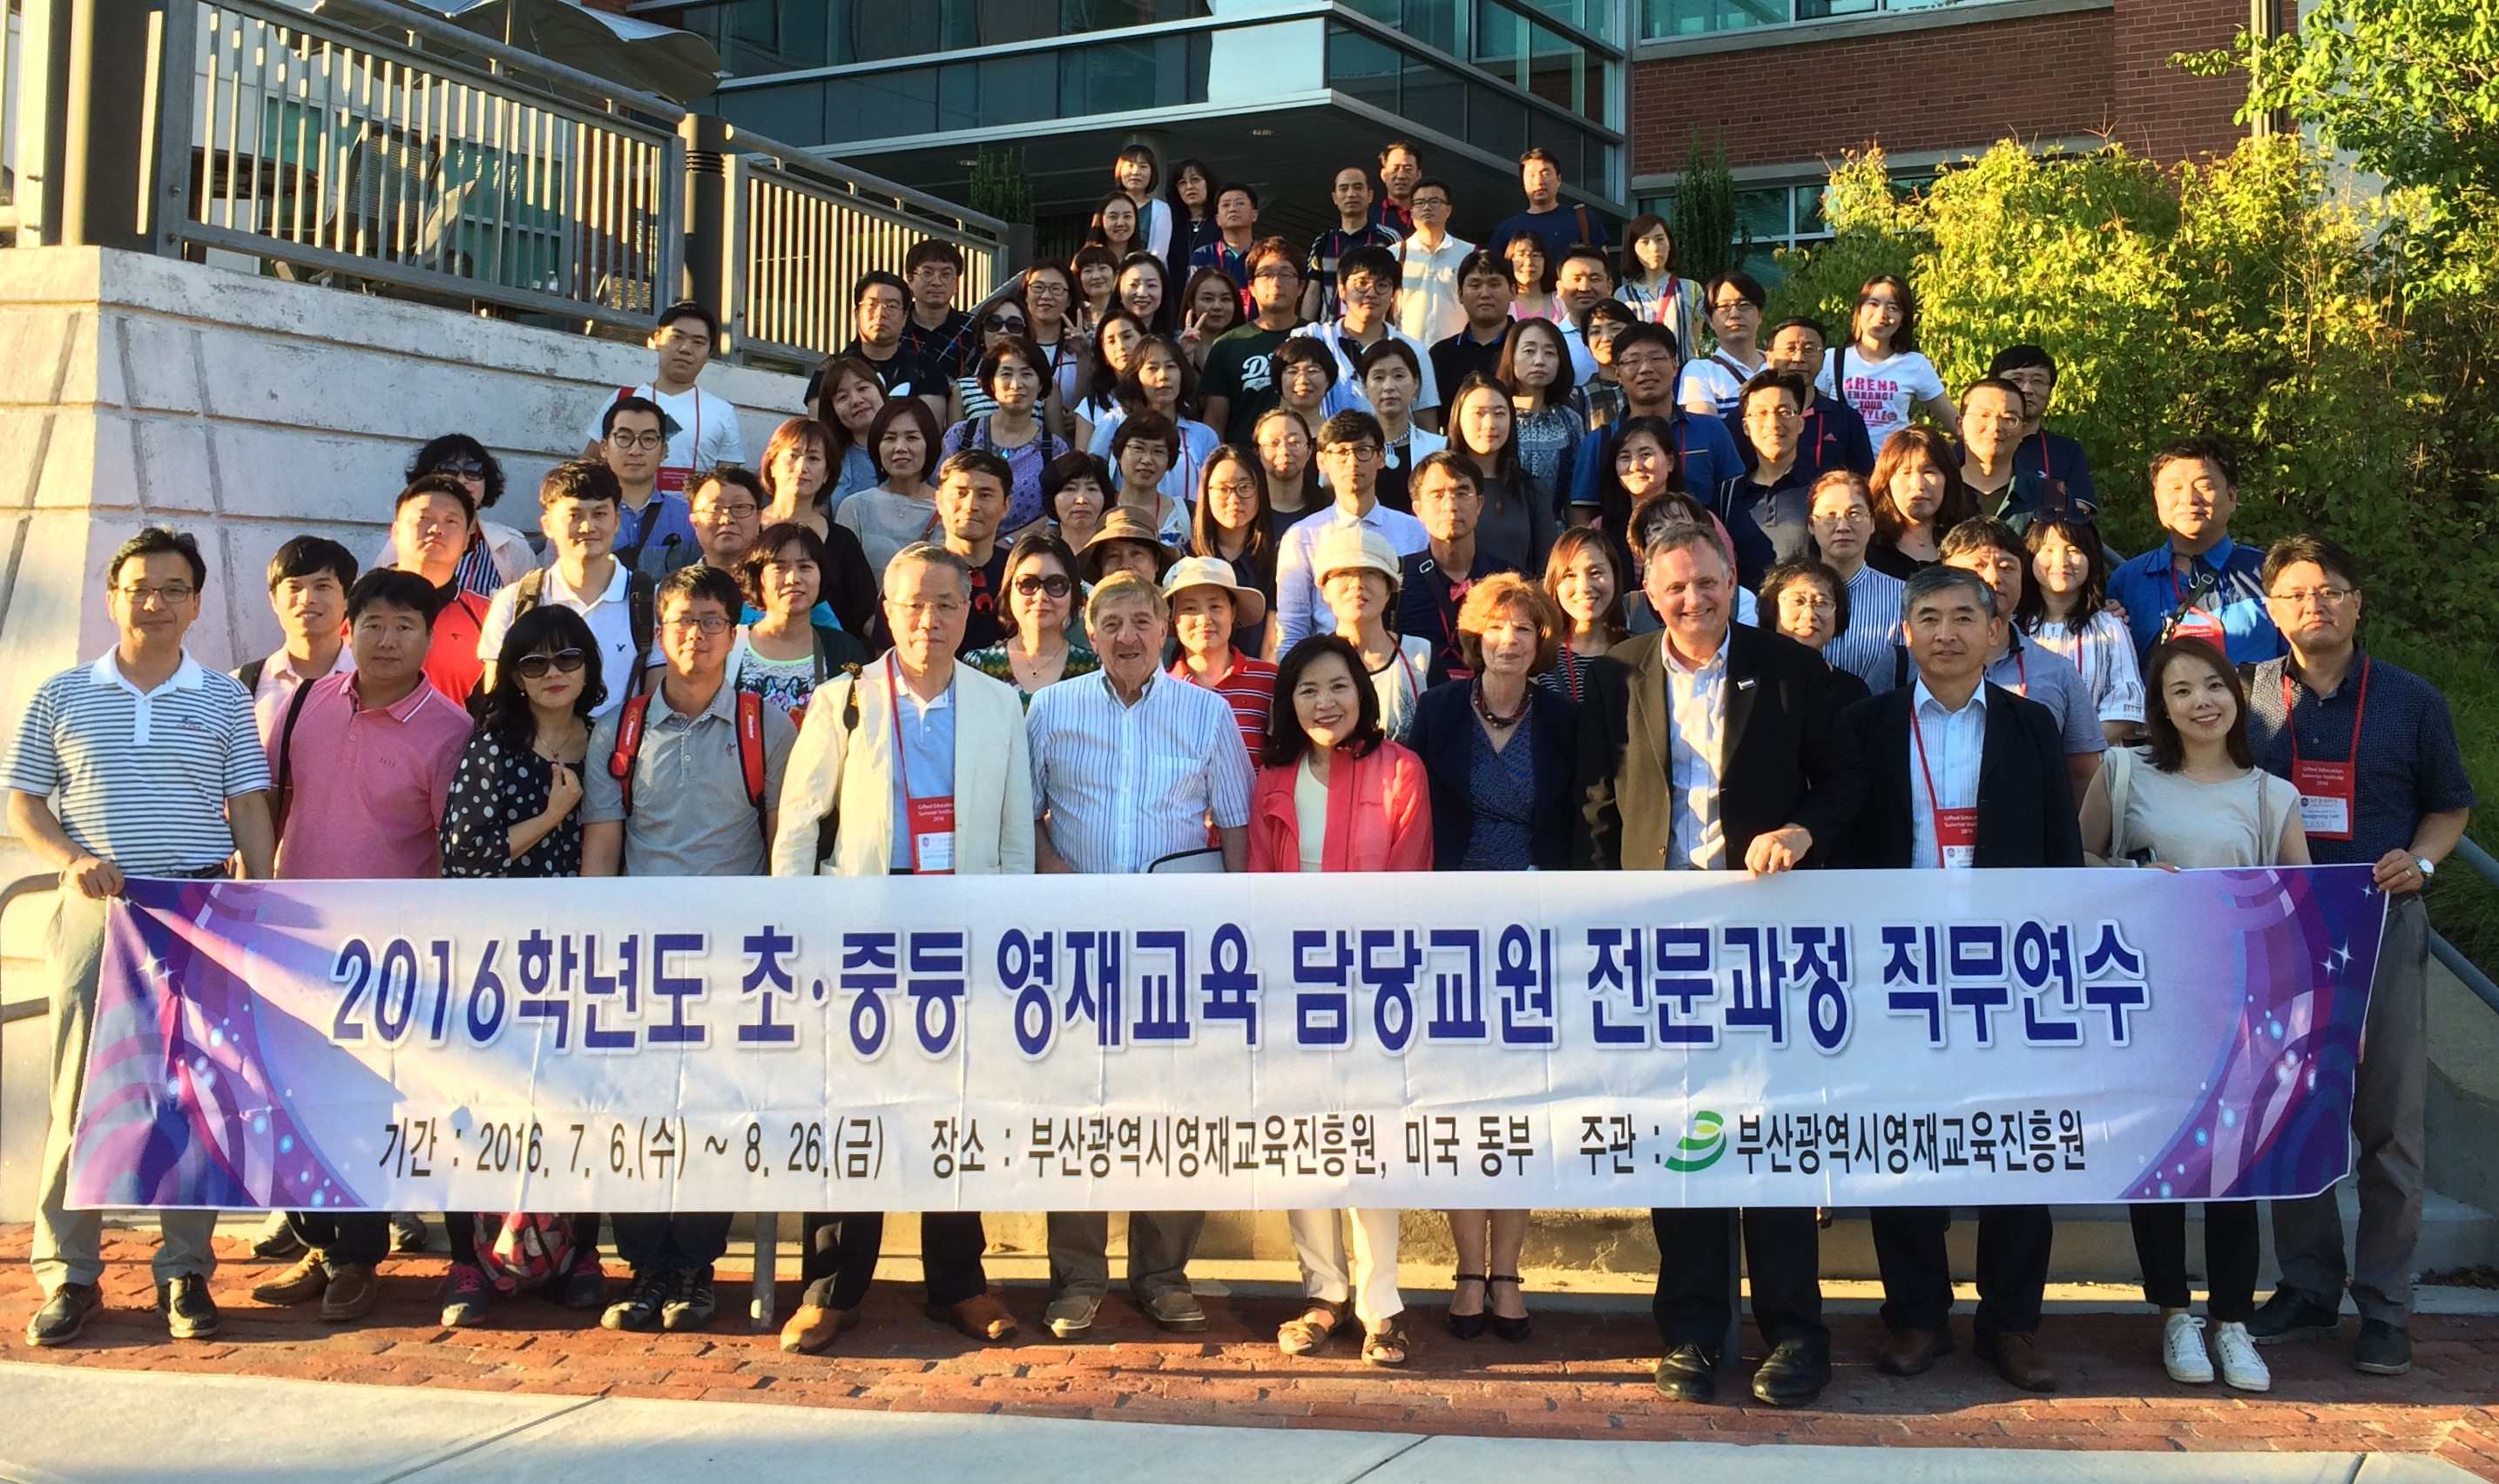 South Korean Educators Visit NCRGE